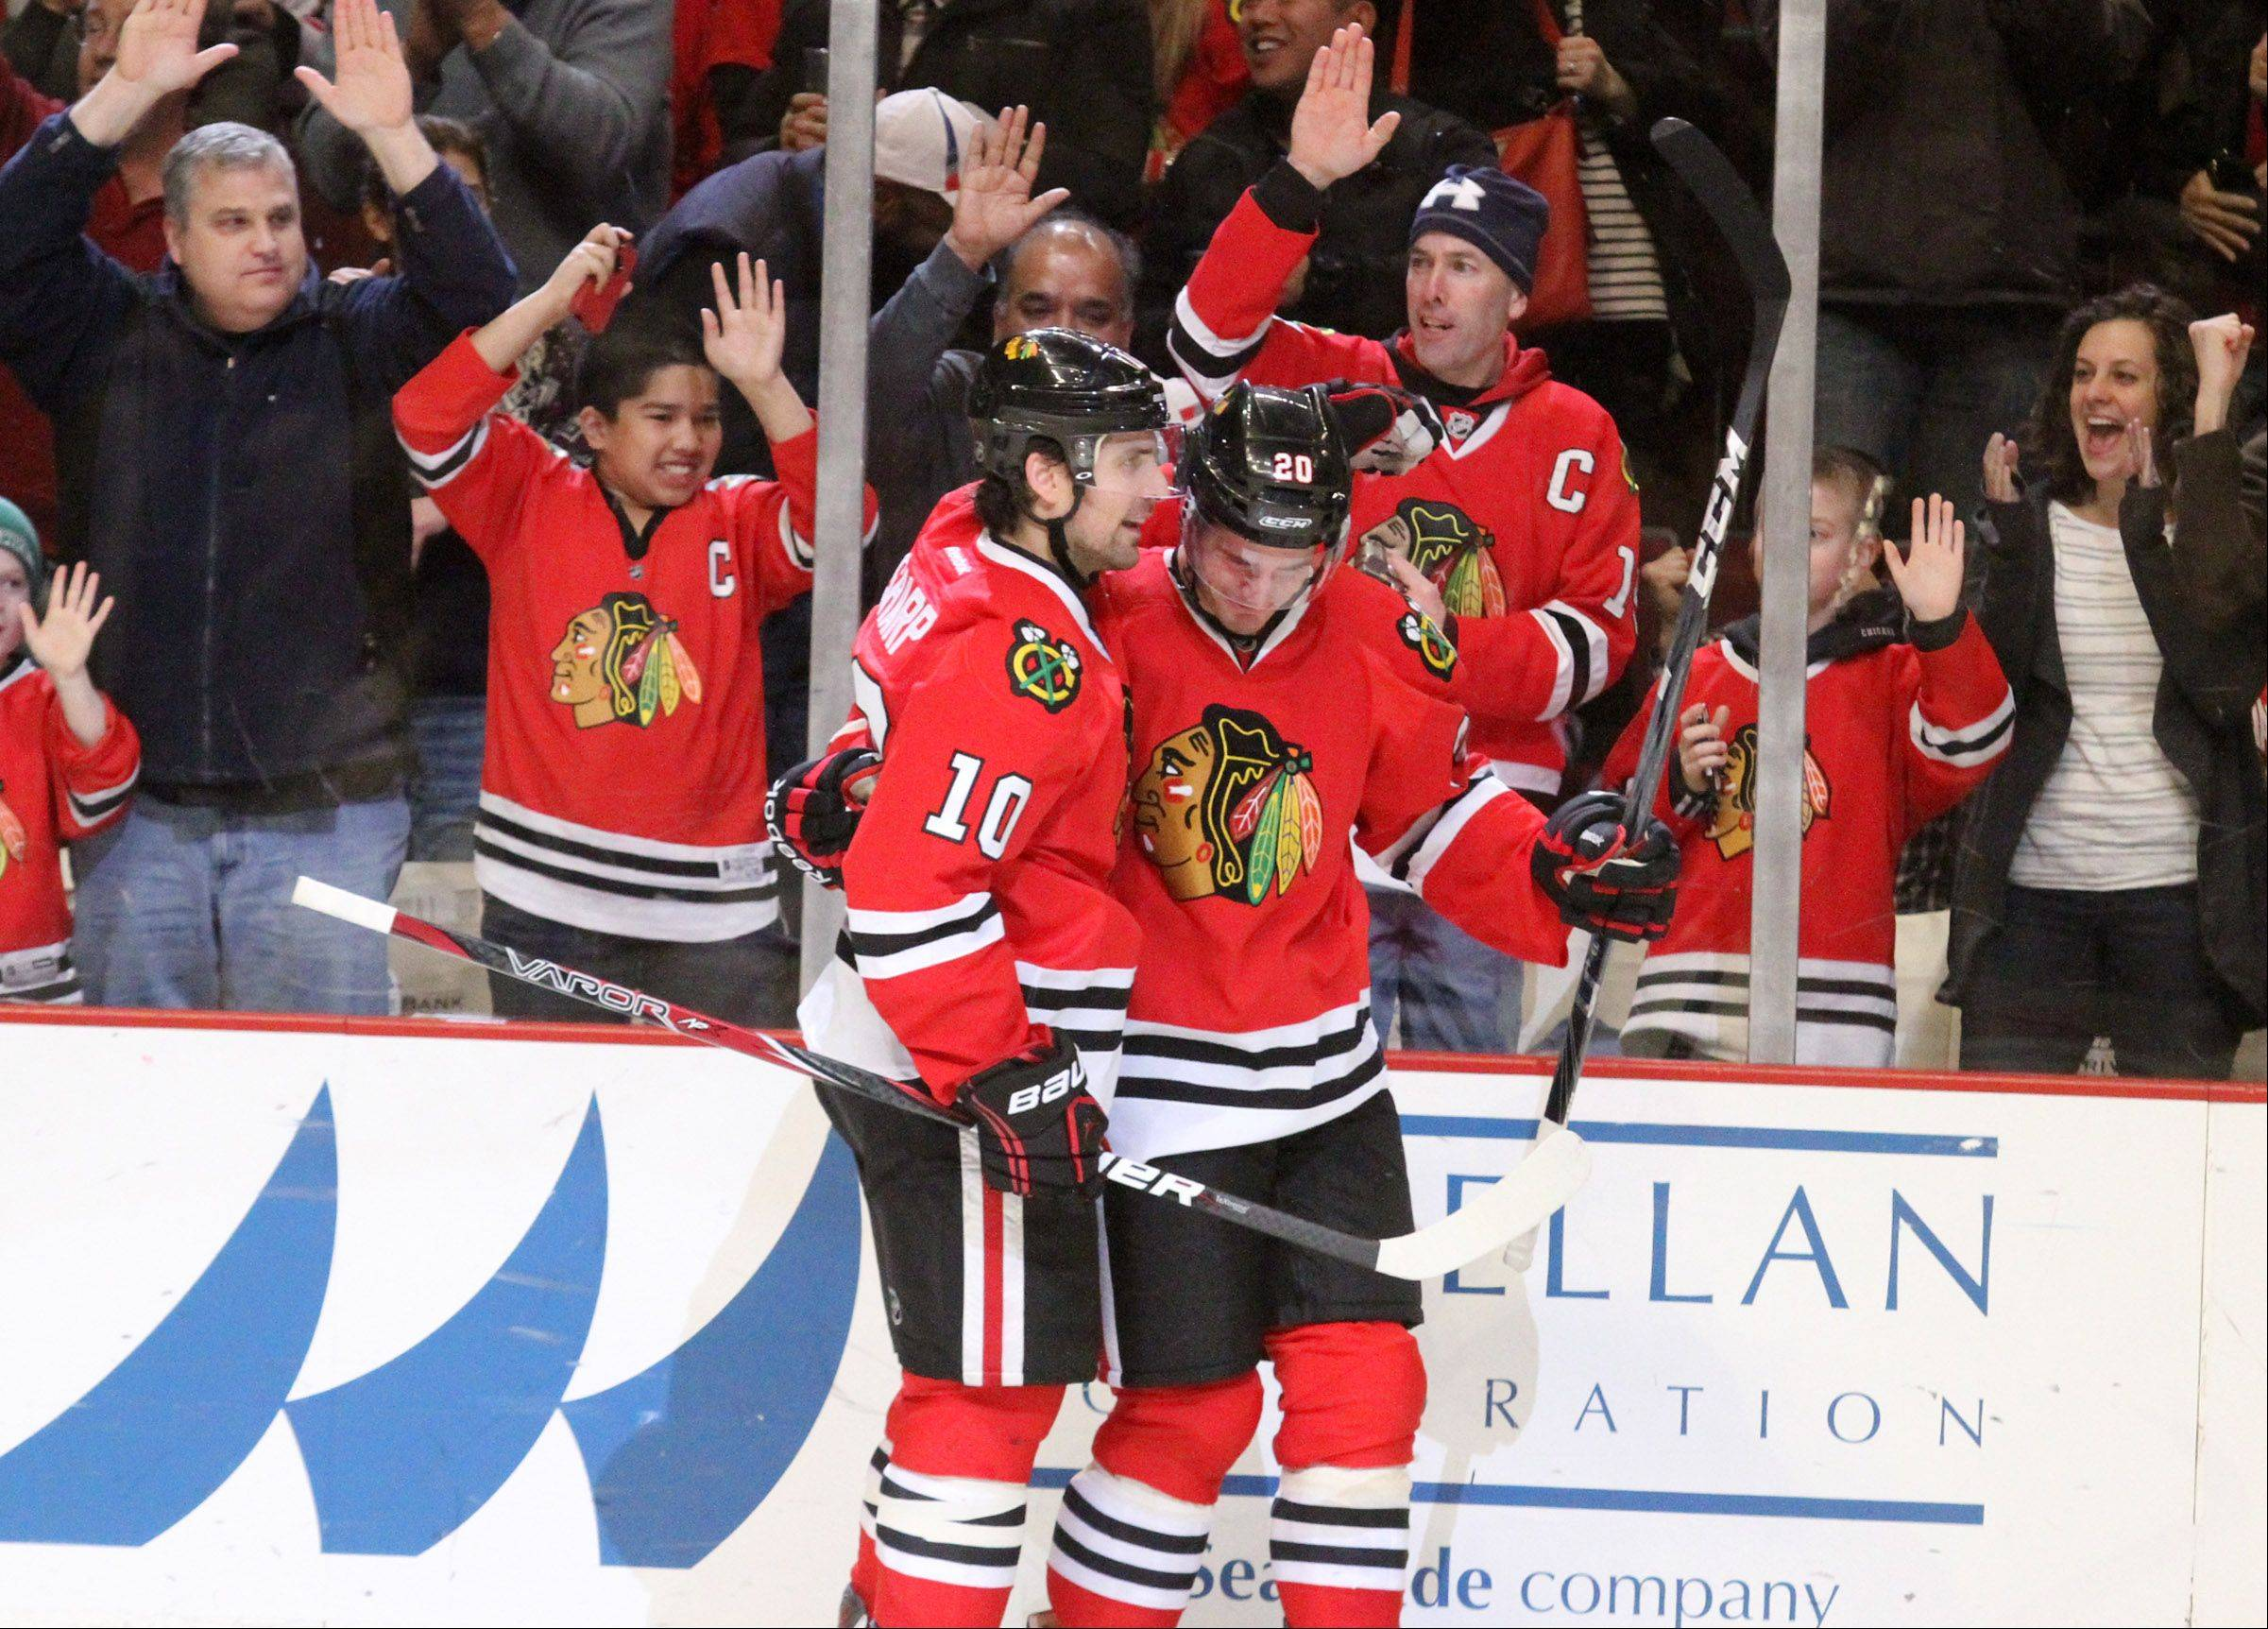 Patrick Sharp gives Brandon Saad a hand after Saad scored in the third period.